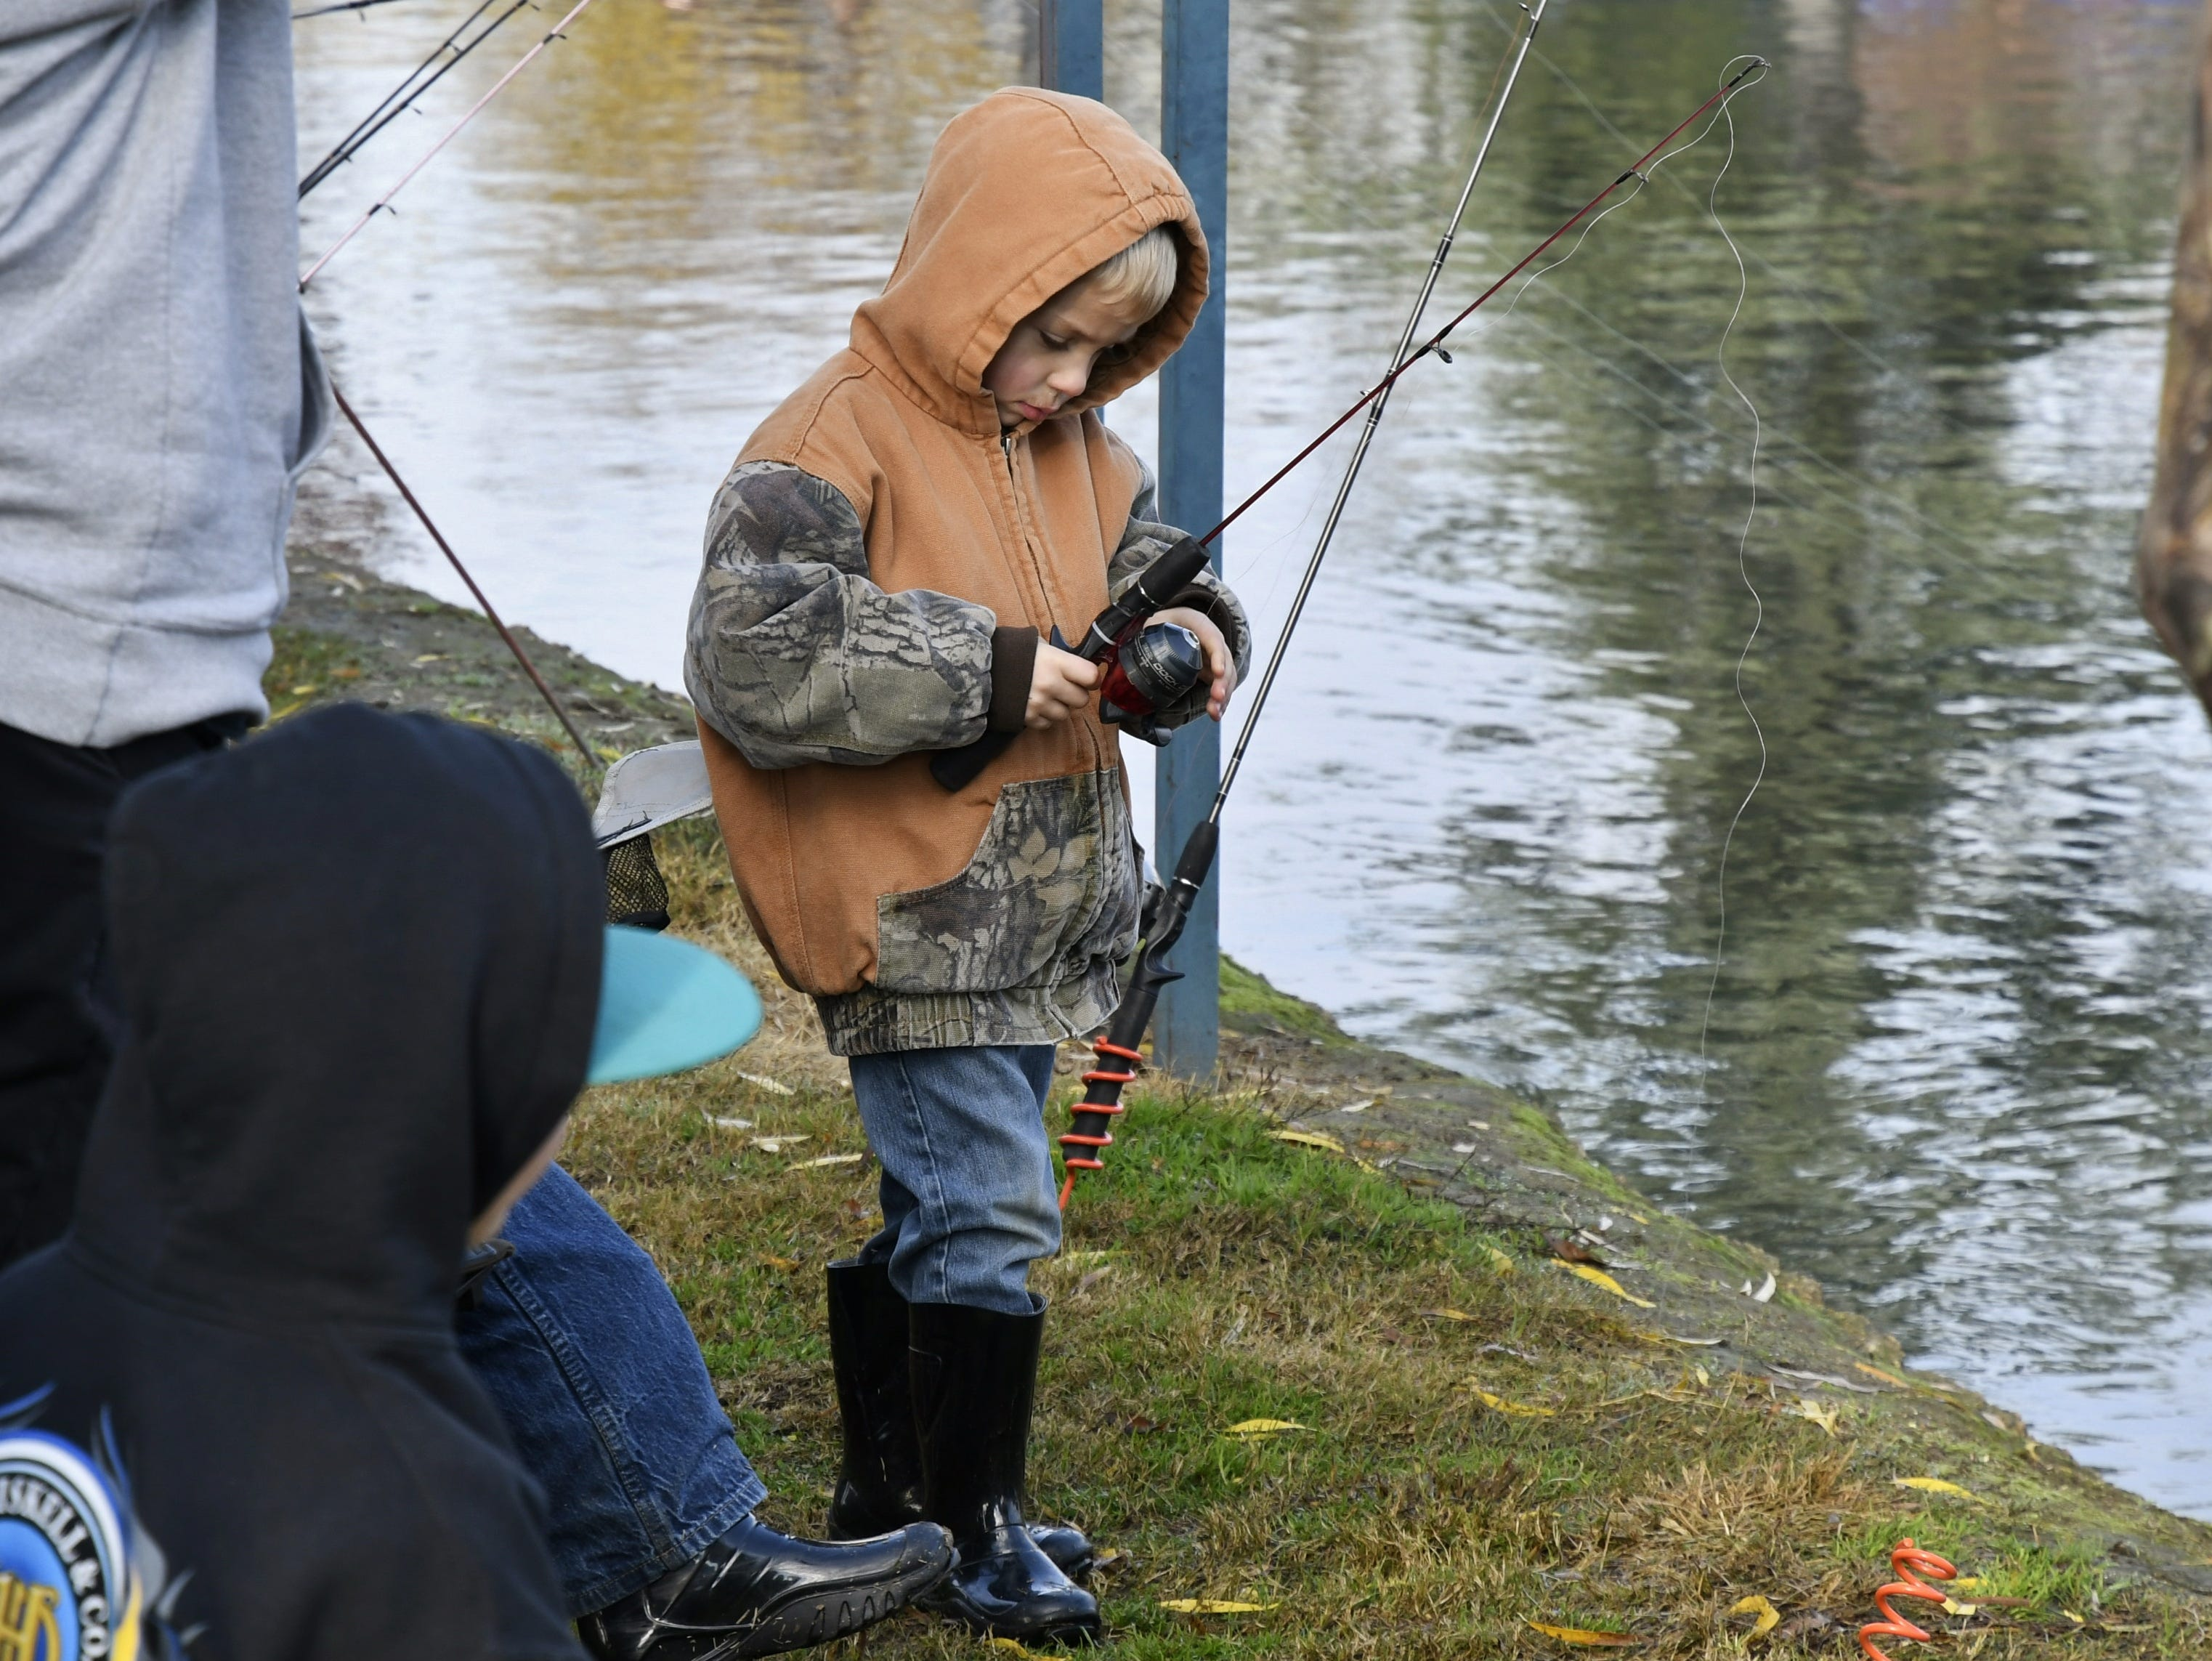 Hundreds of families gather at Del Lago Park to cast a line at the annual Tulare Parks and Recreation Trout Fishing Derby on Saturday, December 1, 2018.